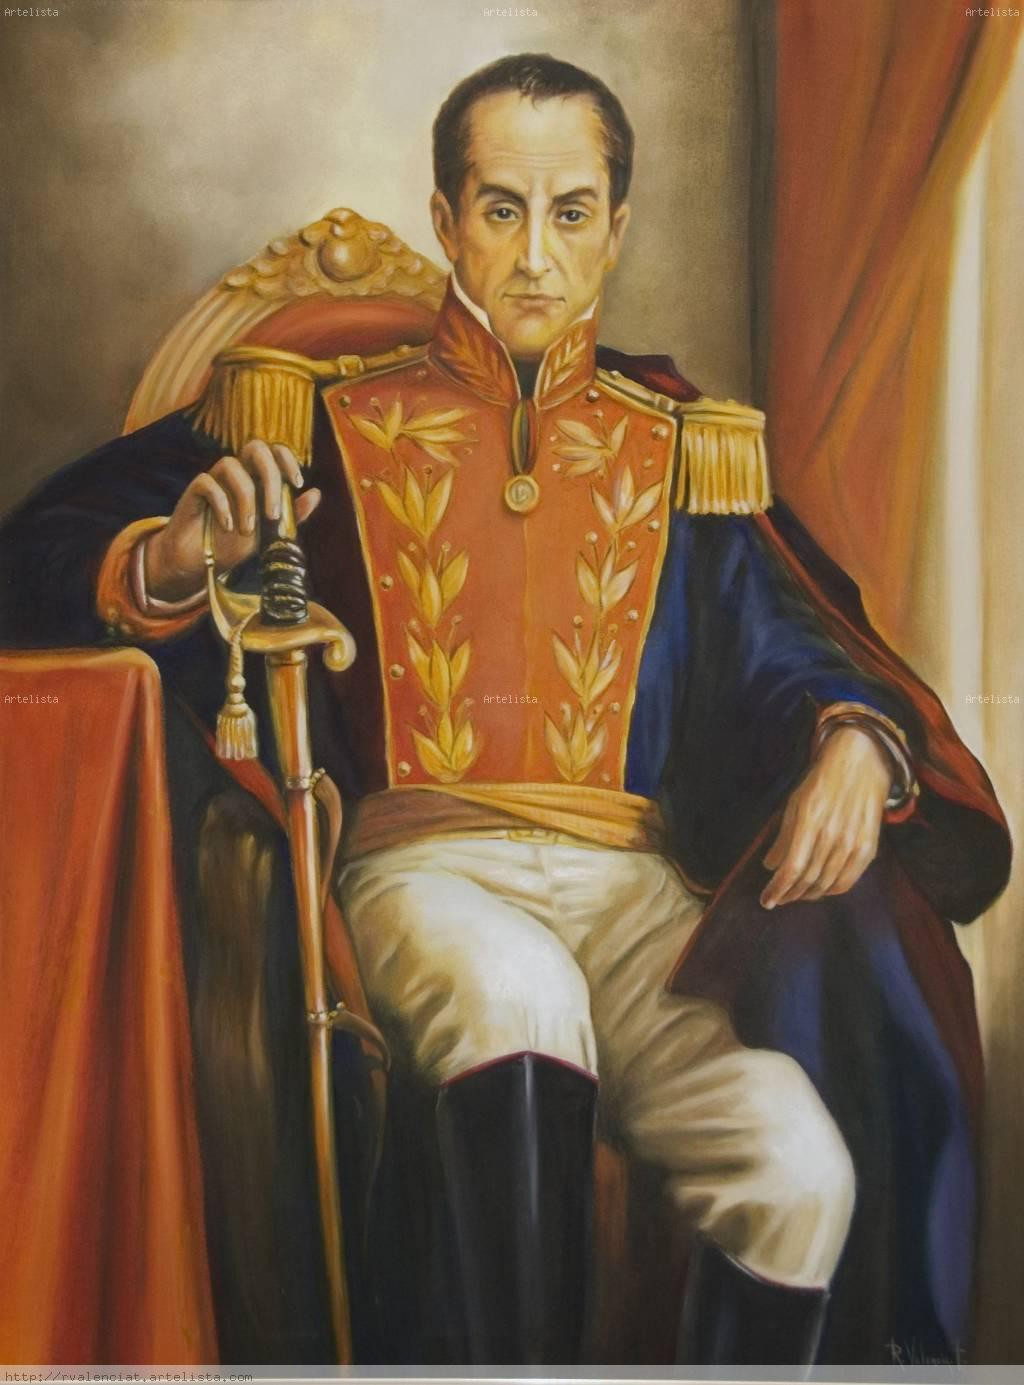 essays on simon bolivar and napolean Simon bolivar the liberator, as he is most commonly known, was one of the greatest latin american revolutionary leaders in history bolivar was born in caracas, venezuela on july 24, 1783 of a wealthy family.